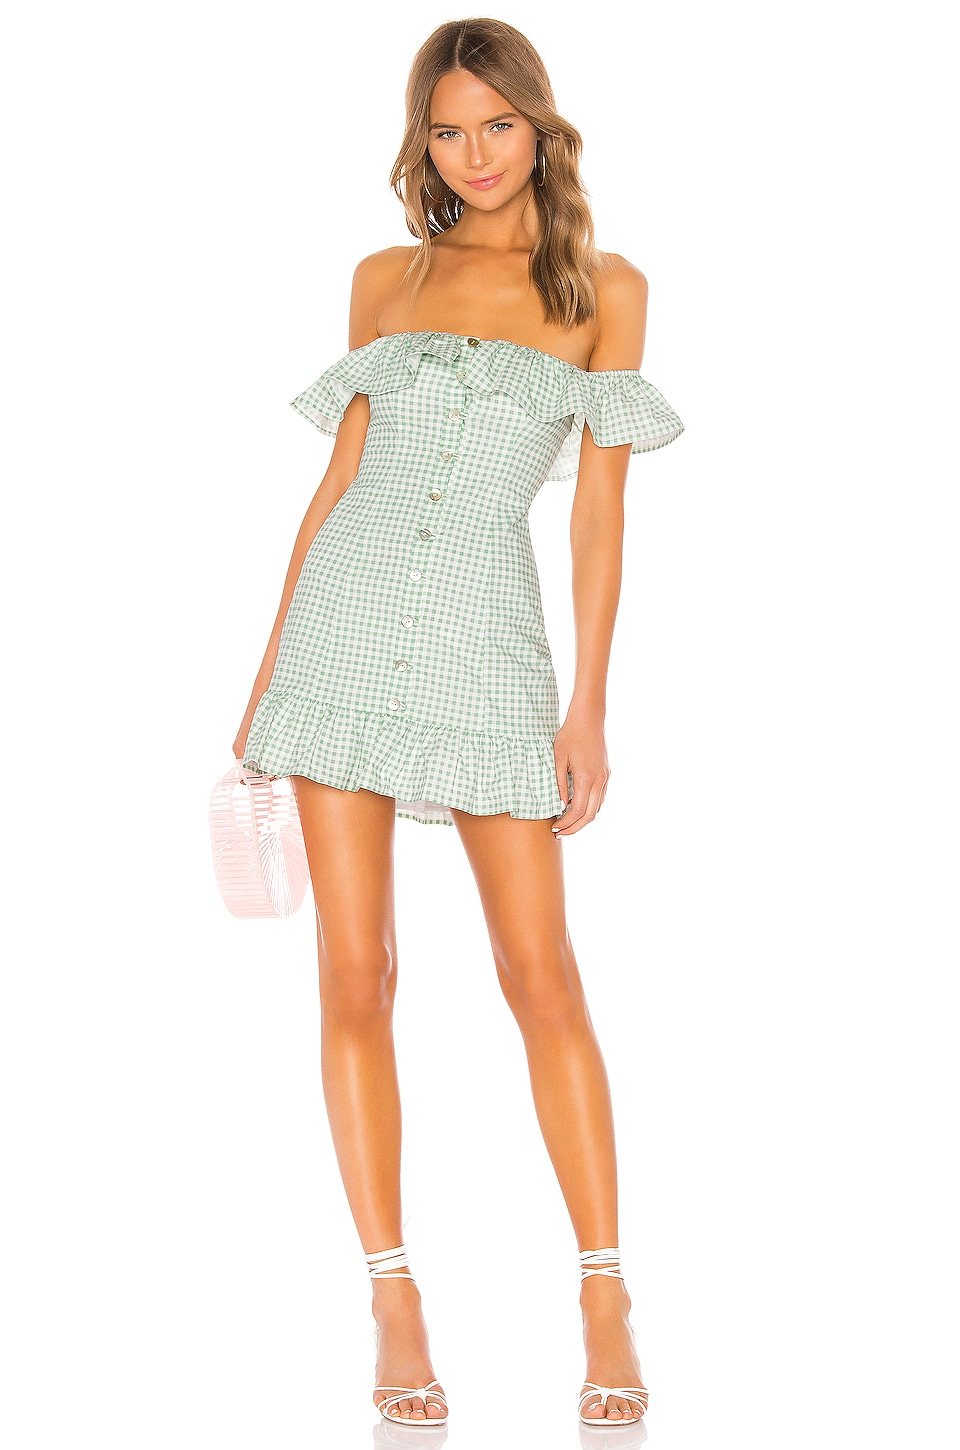 Lovers + Friends Lilith Mini Dress in Sage Green